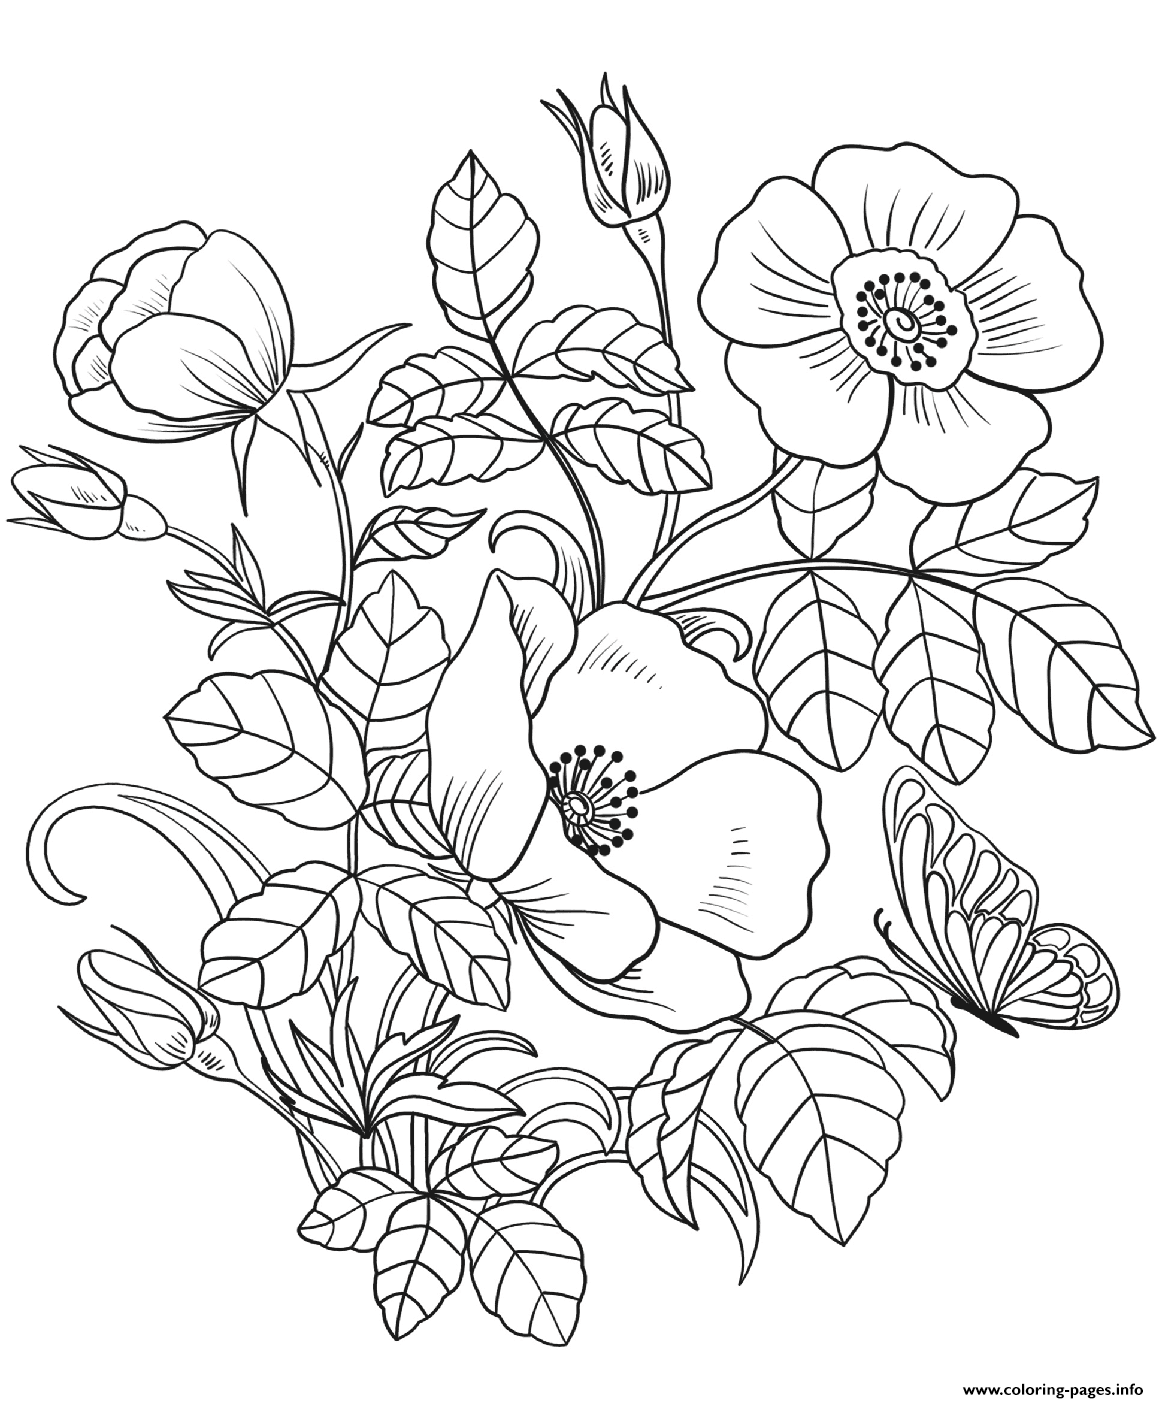 printable flower pictures tulip coloring pages download and print tulip coloring pages pictures printable flower